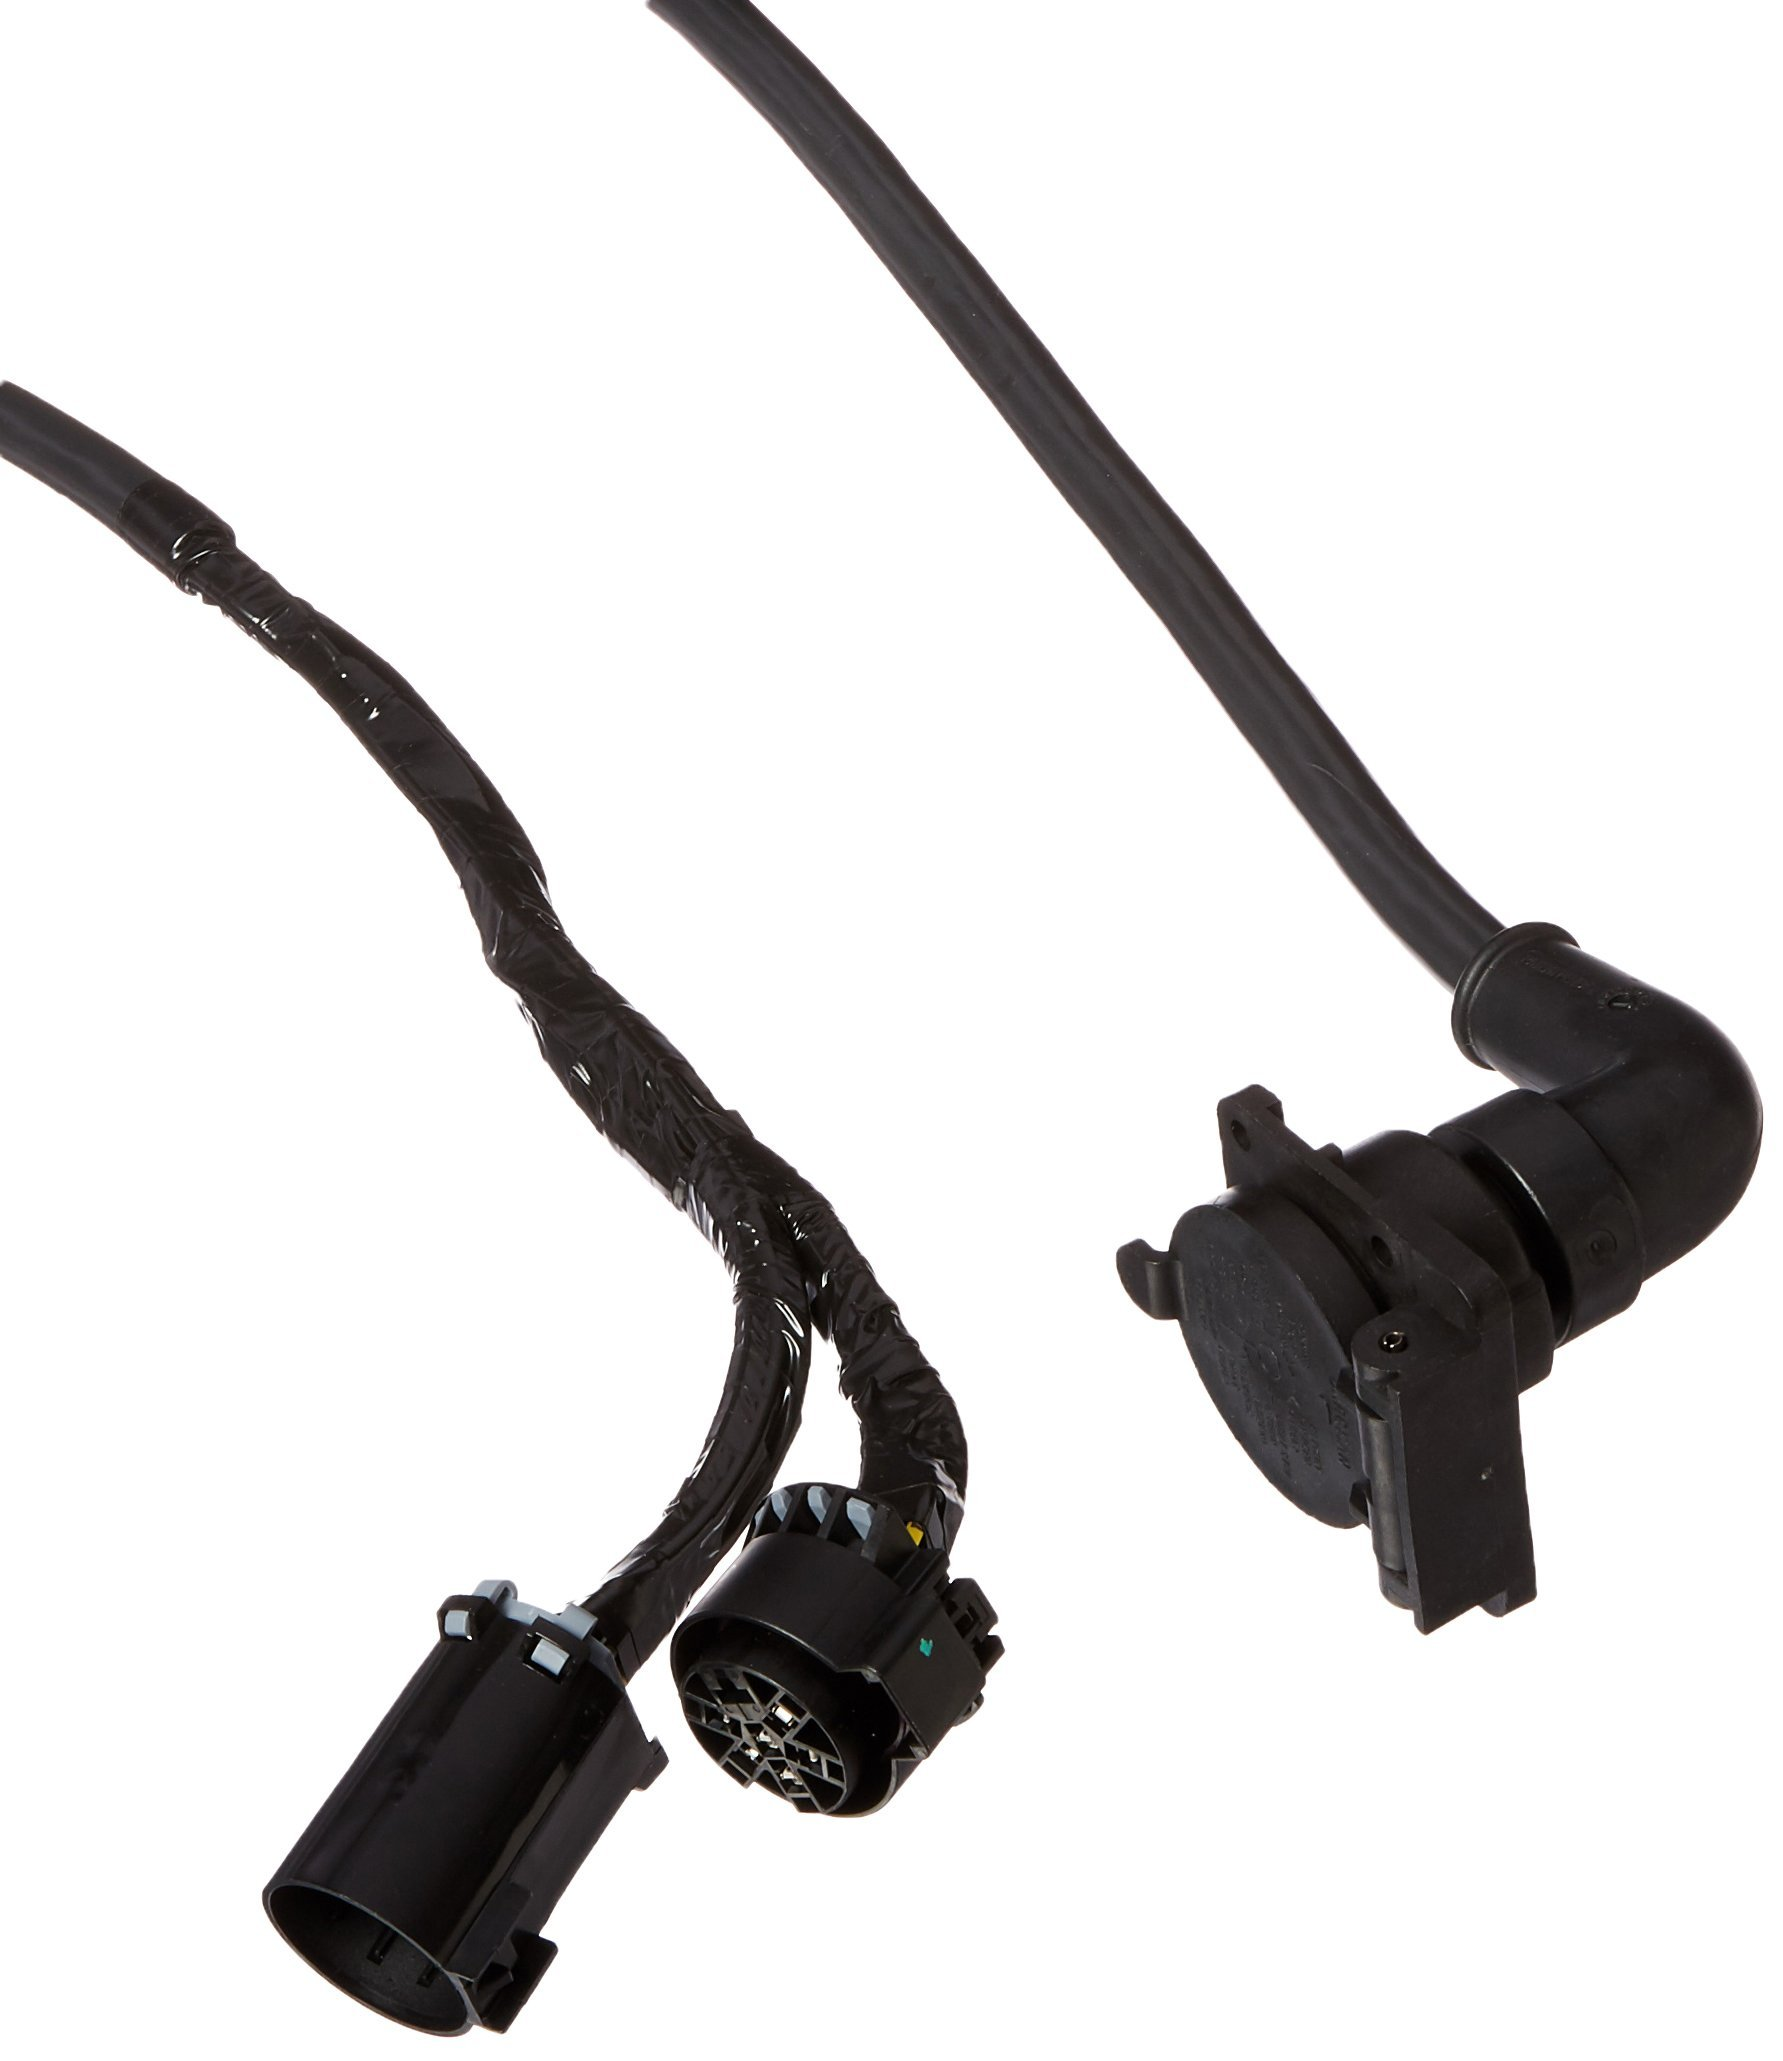 Bargman (5097410 90° Fifth Wheel Adapter Harness by Bargman